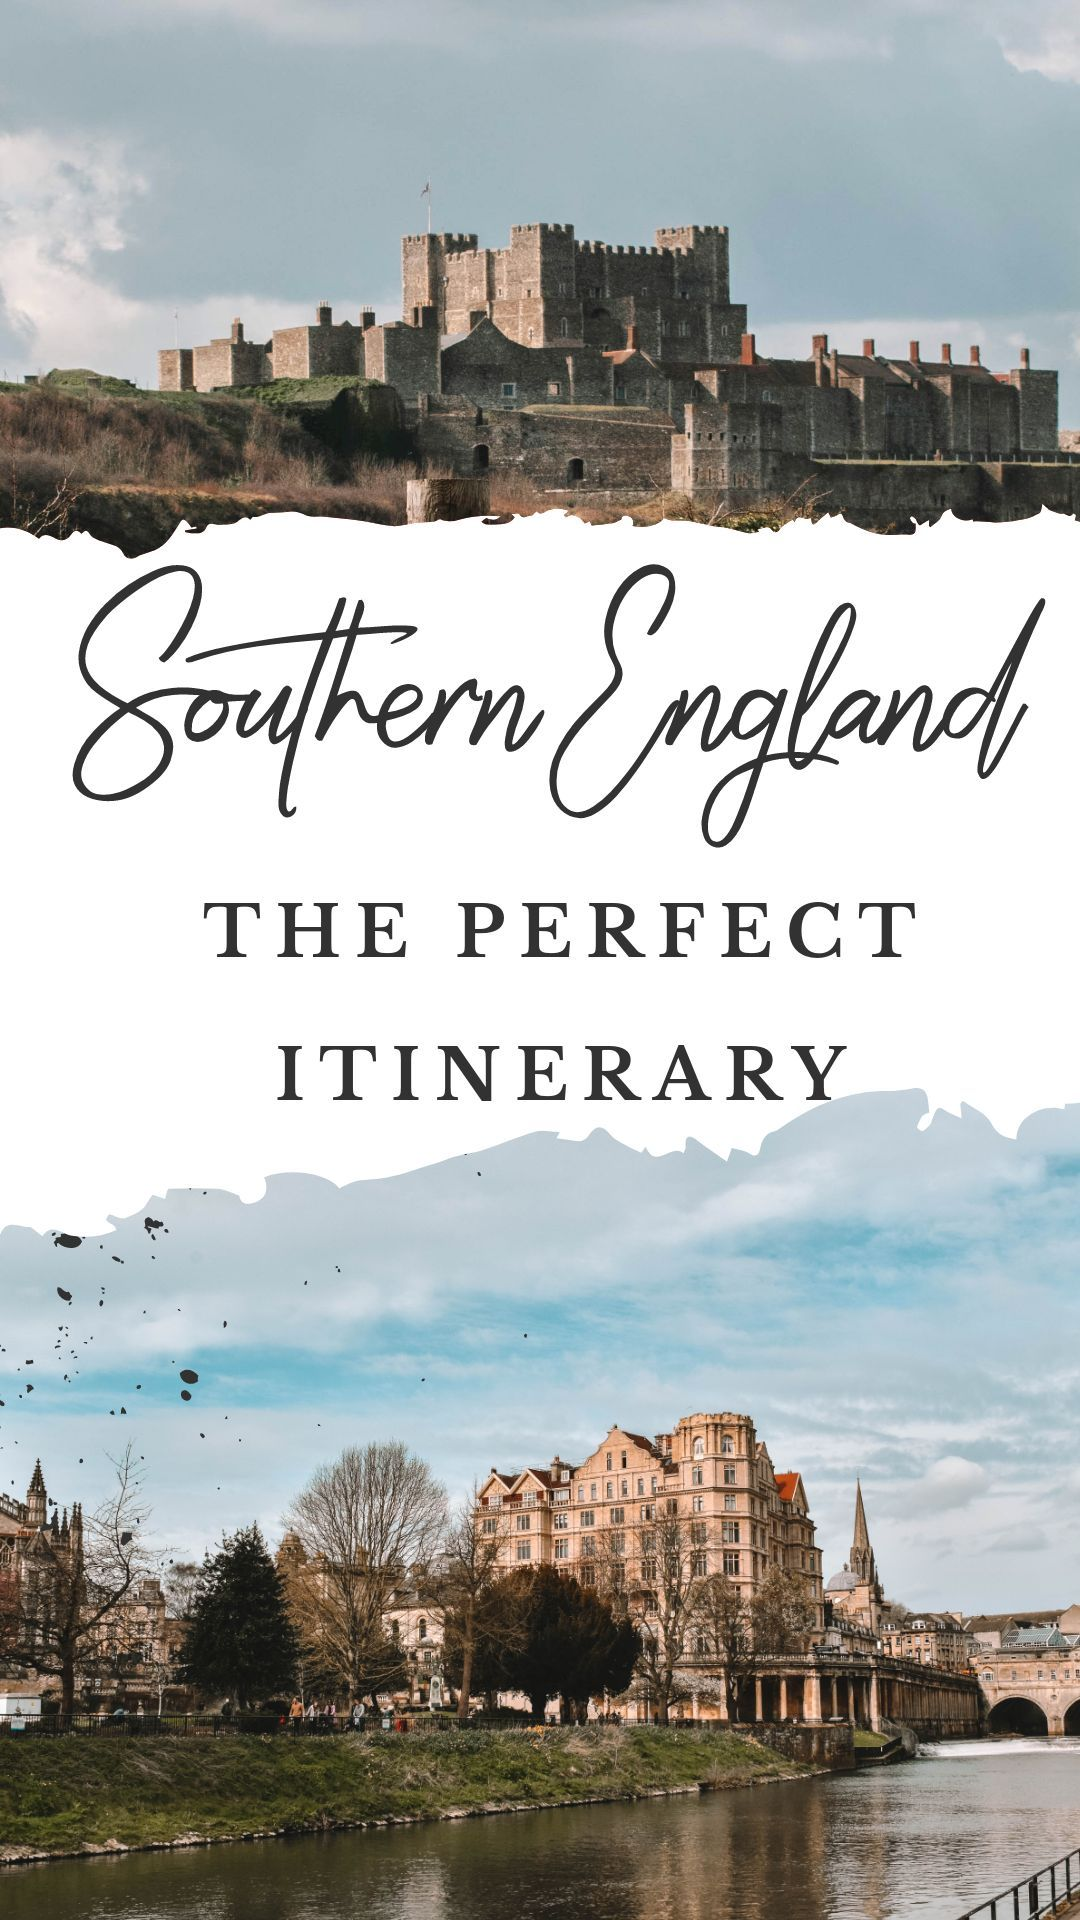 Southern England Itinerary: A Storybook Road Trip